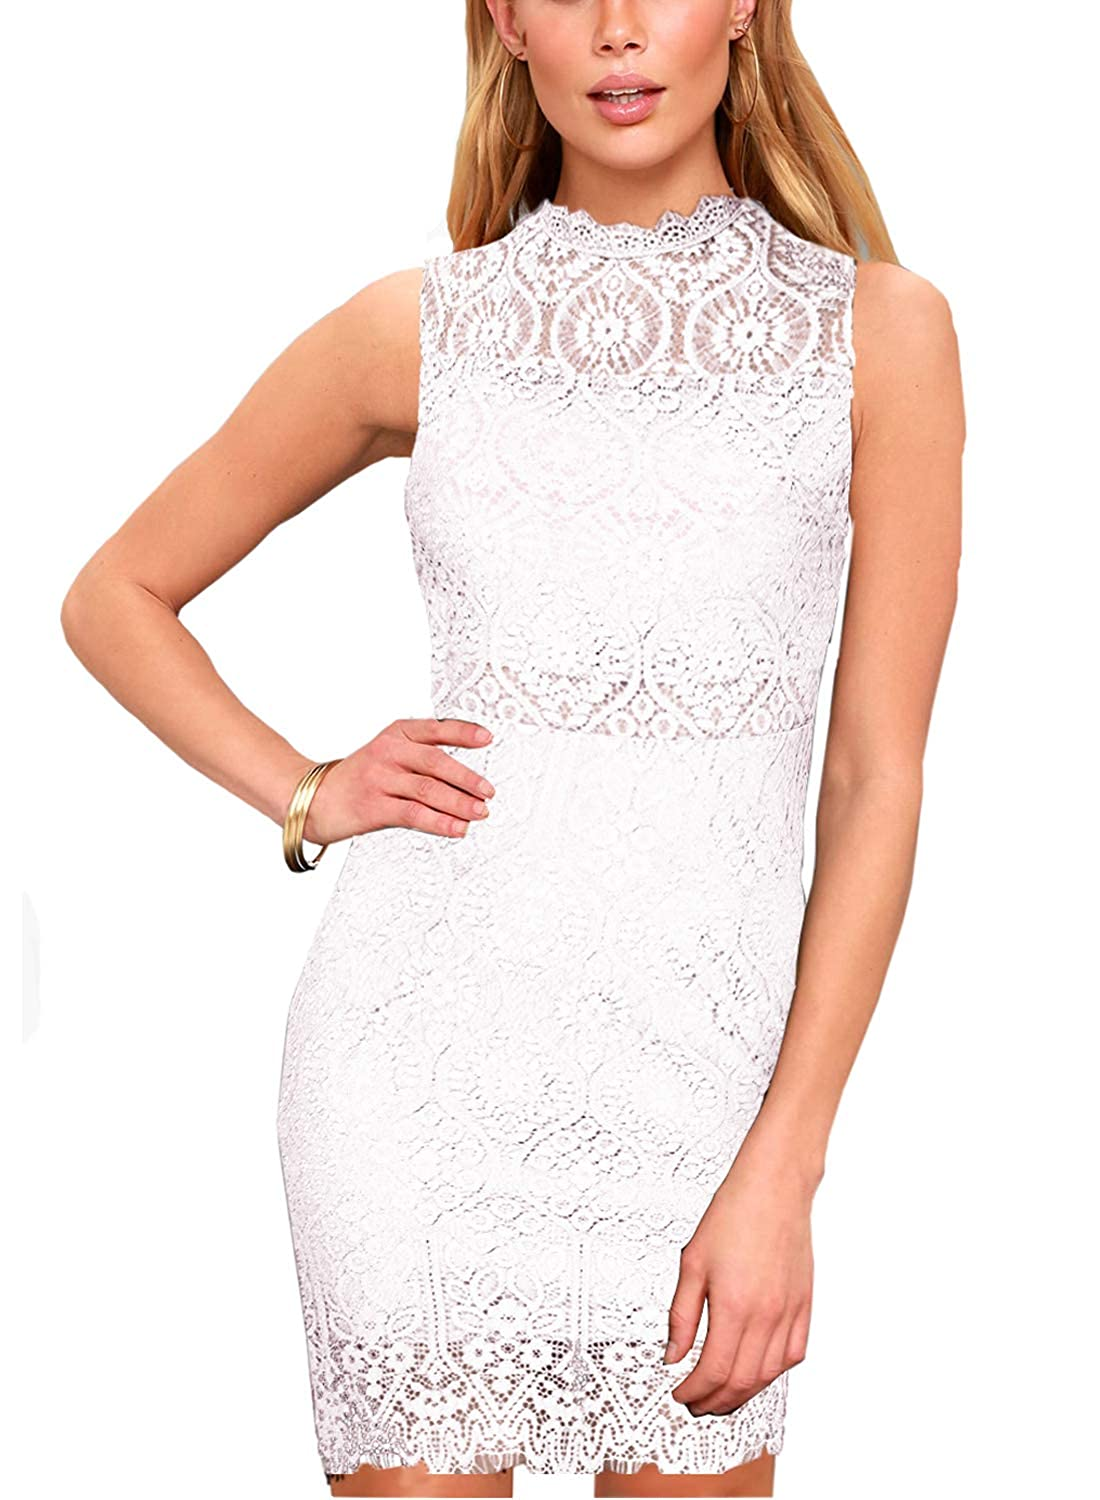 Zalalus Womens Elegant Sleeveless High Neck Floral Lace Cocktail Party Dress